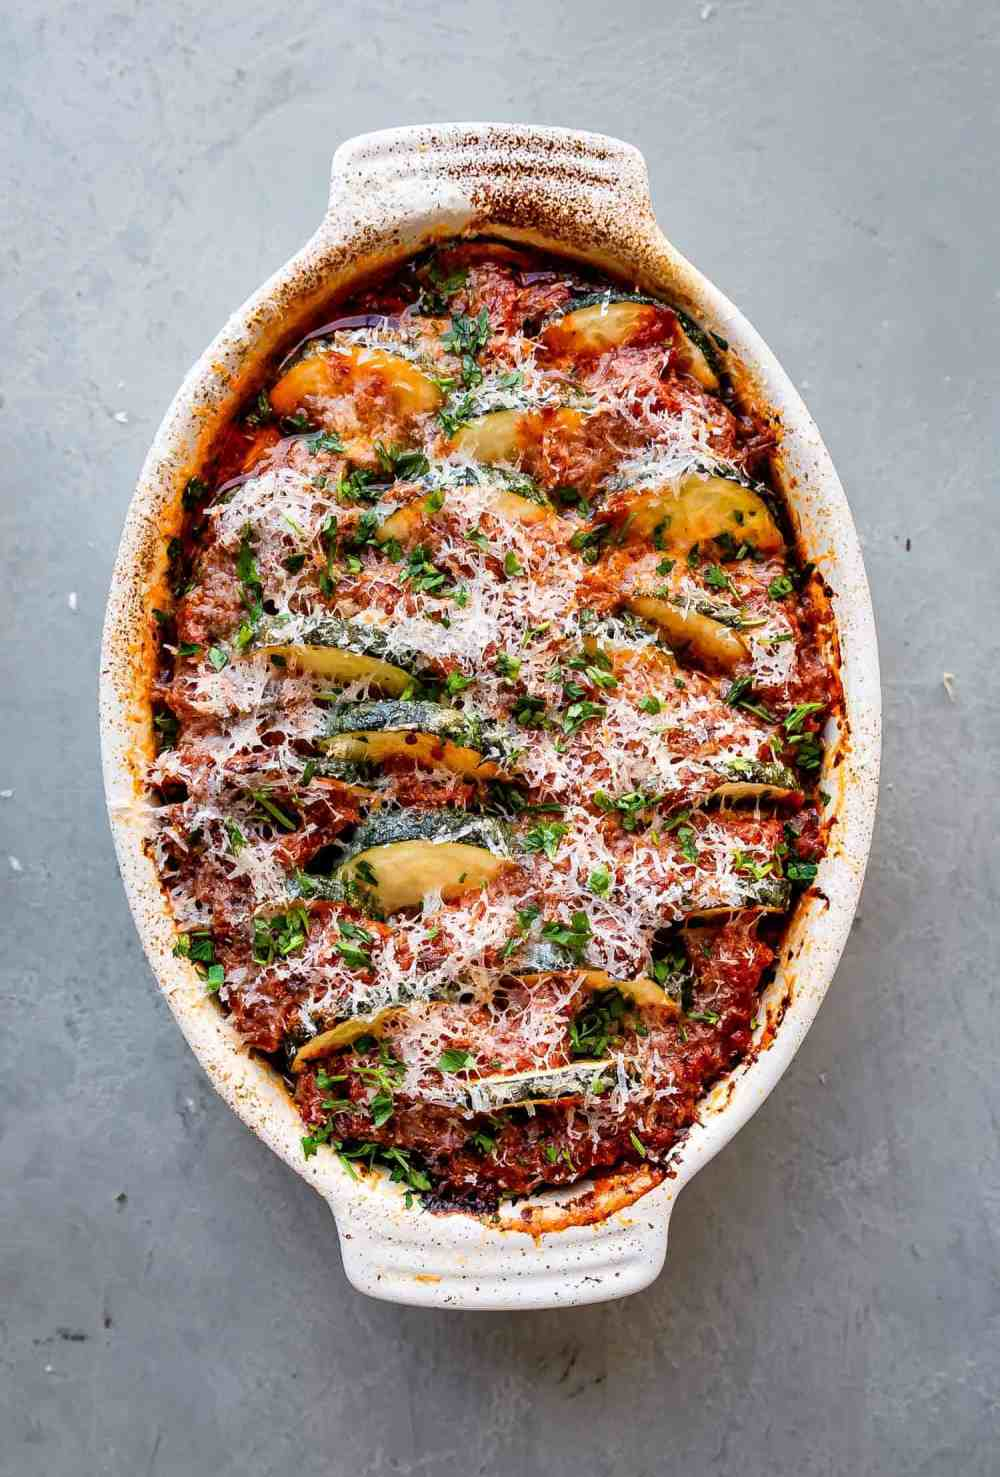 low carb zucchini casserole with red sauce and parmesan cheese on top